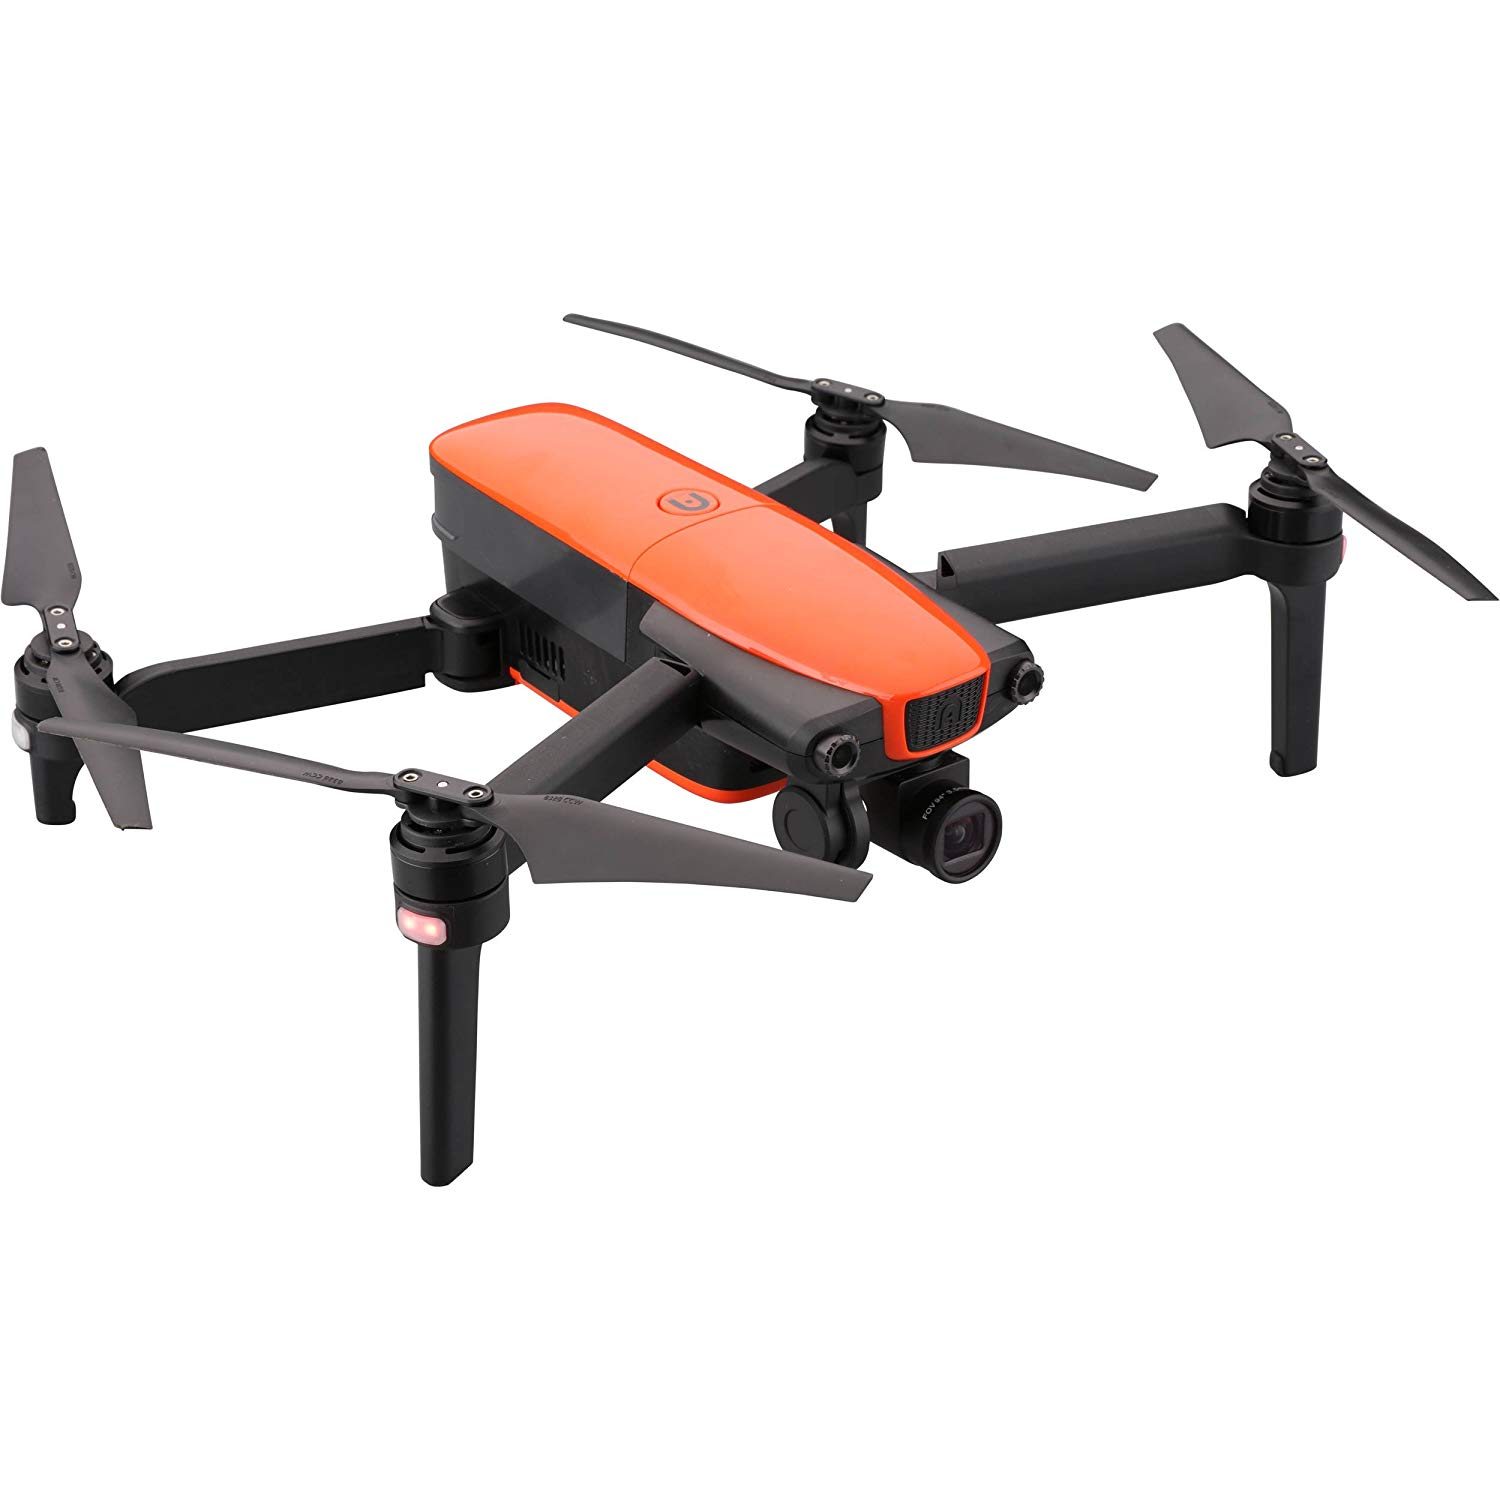 Autel Robotics EVO Foldable Quadcopter